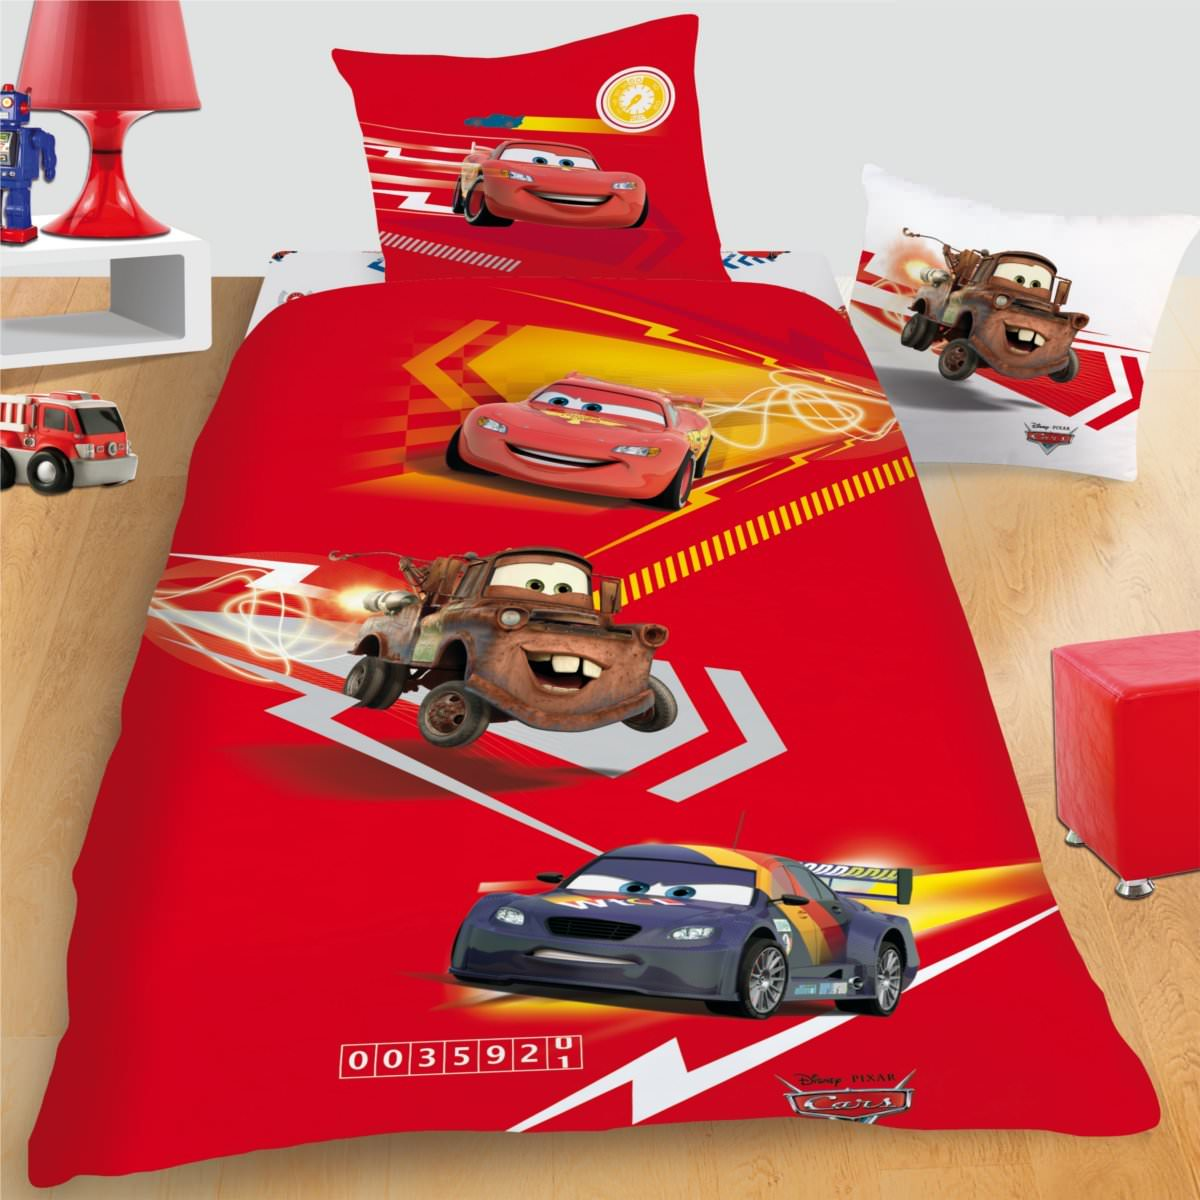 housse de couette disney cars 140 x 200 cm parure de lit trio d cokids. Black Bedroom Furniture Sets. Home Design Ideas